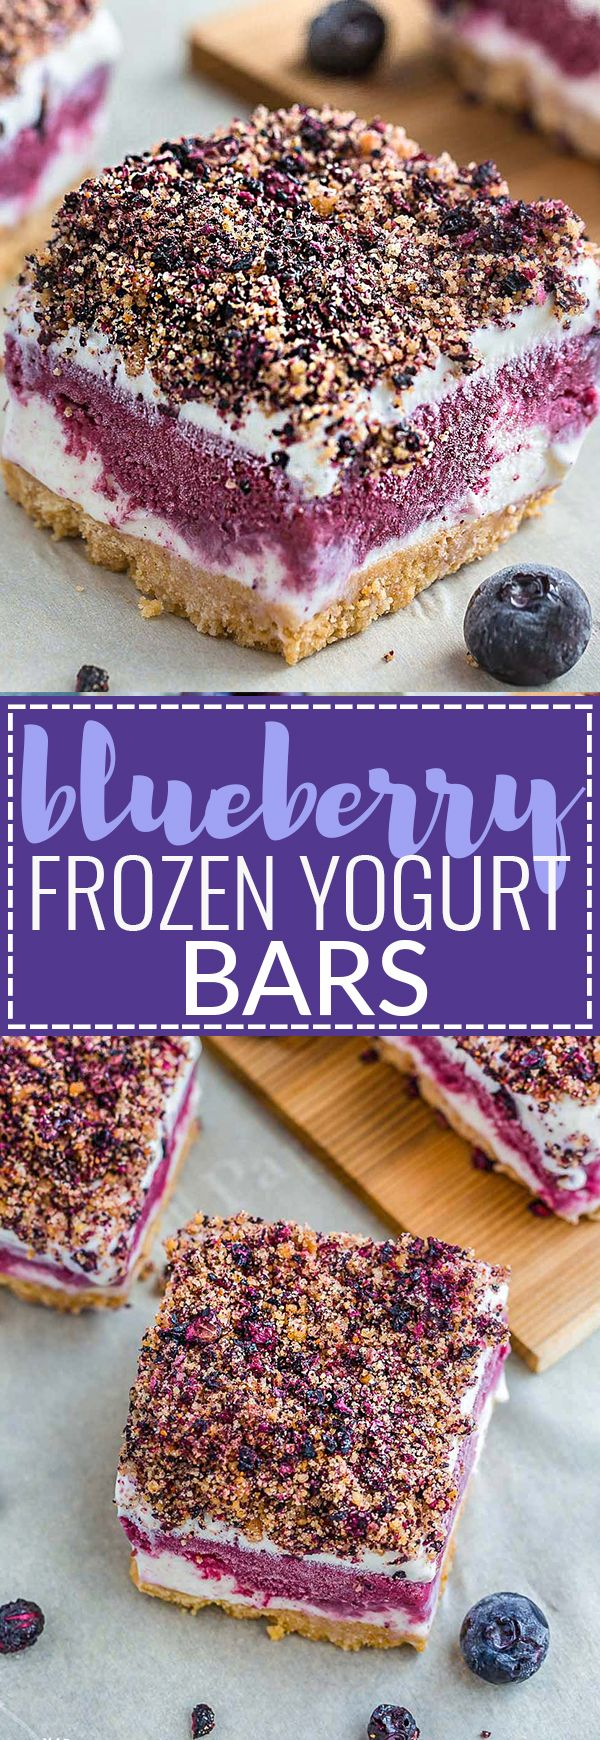 Blueberry Frozen Yogurt Bars are the perfect cool treat on a hot summer day. They're a healthier blueberry version of the classic Strawberry Shortcake Good Humor Ice Cream popsicles. Best of all, they're, so easy to make with delicious layers of blueberry & strawberry frozen yogurt, a crumbled shortbread topping & no-bake cookie crust.